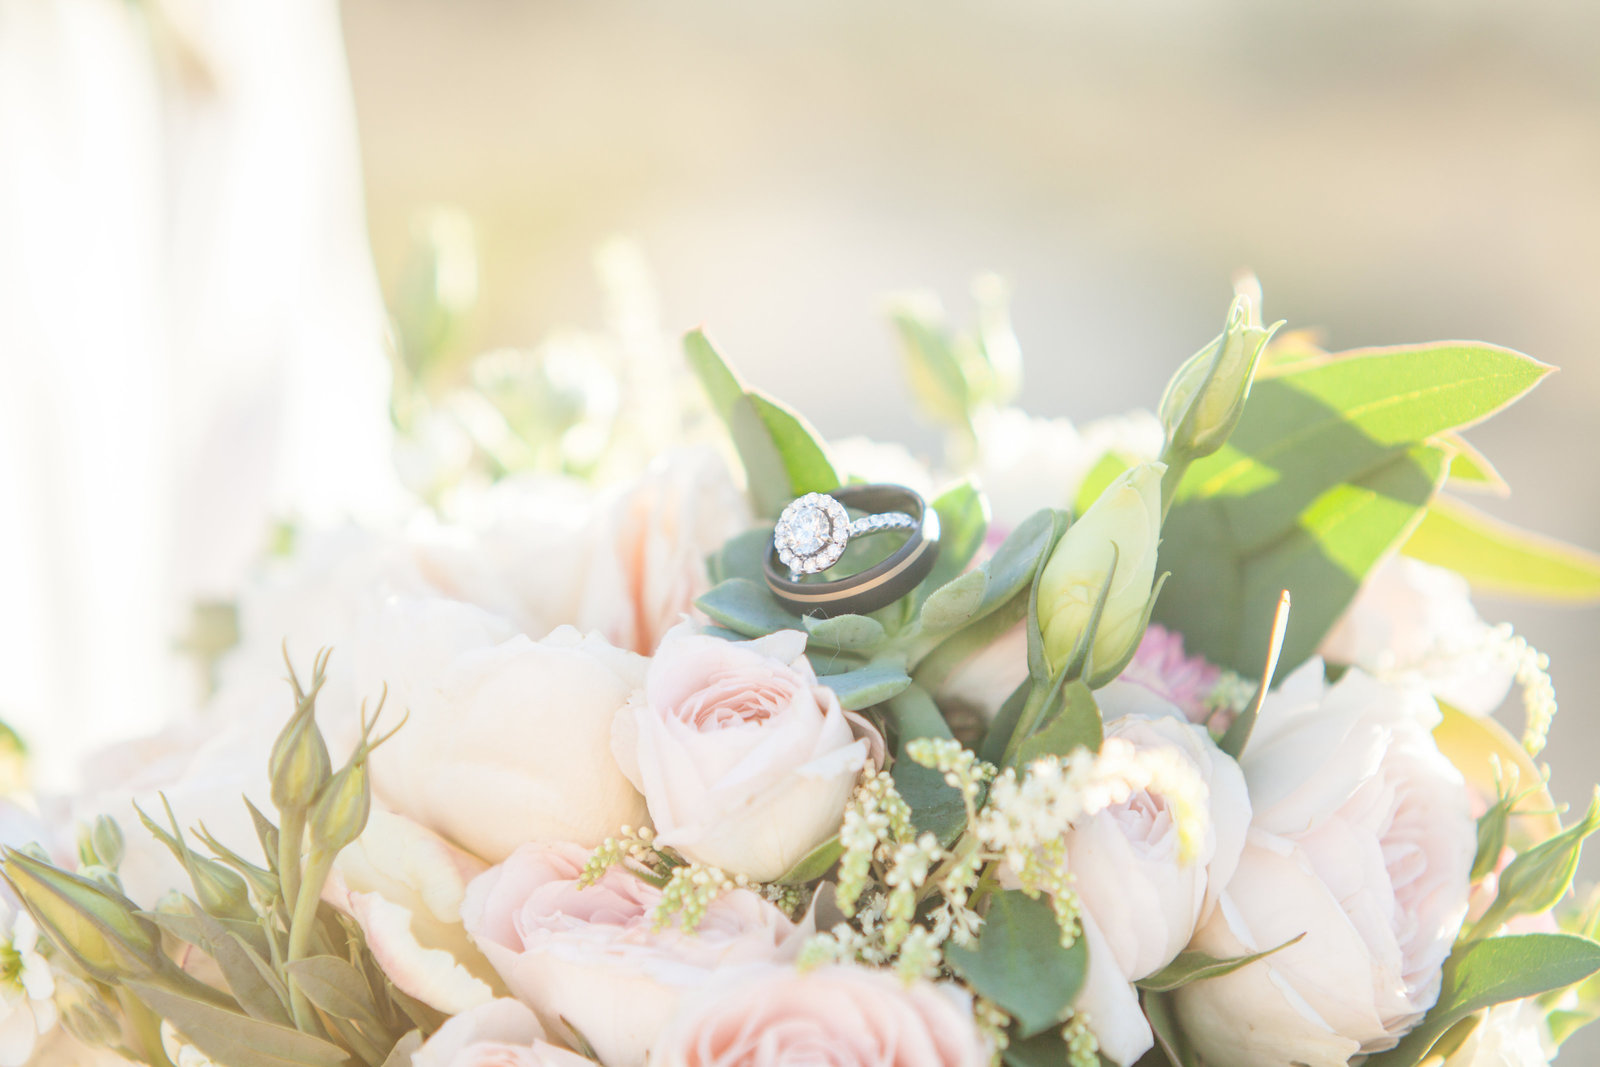 Joshua Tree wedding ring and flower bouquet photo natural light